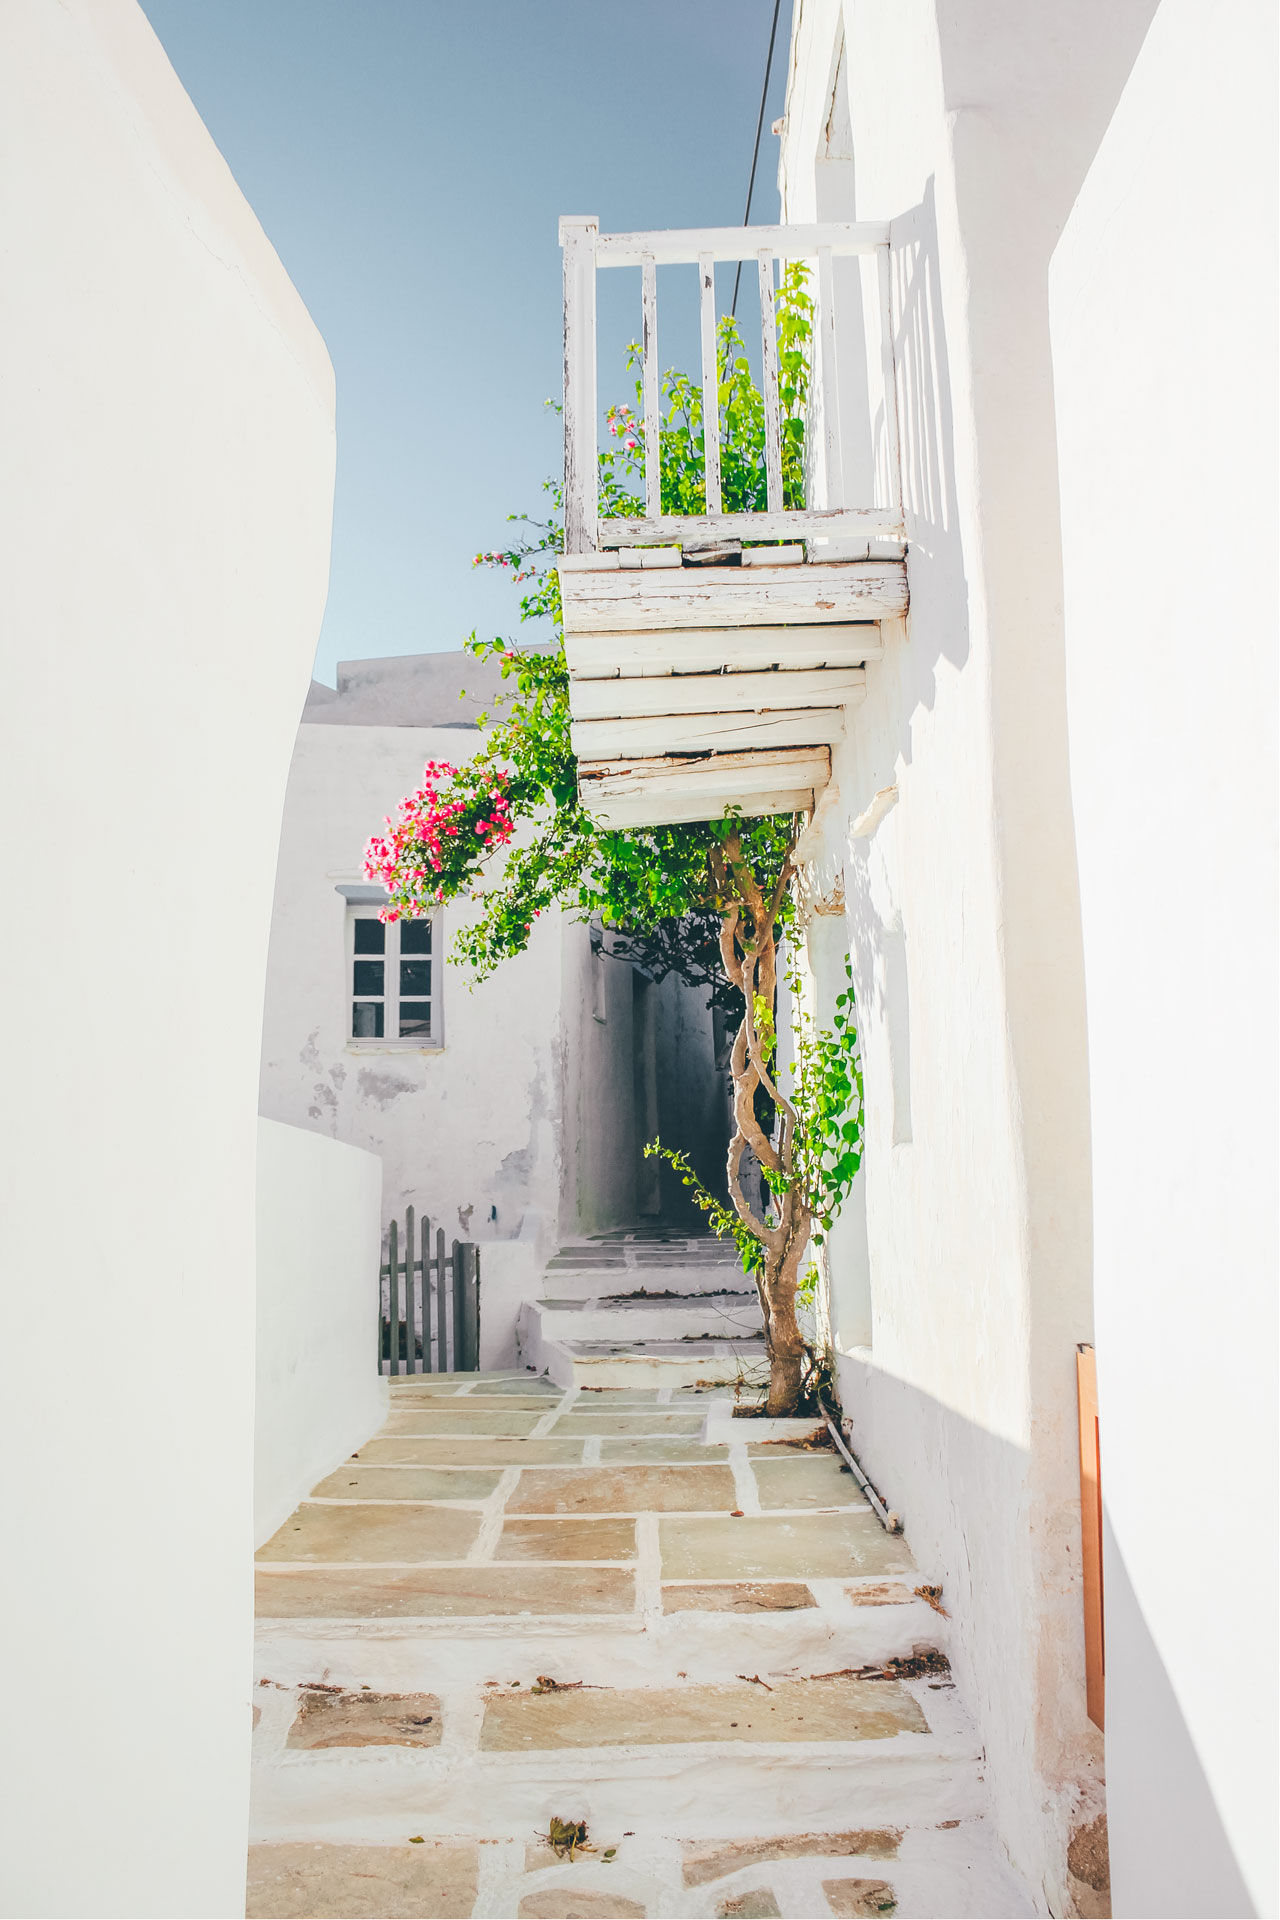 It's a Cycladic maze of whitewashed alleys and small courtyards and cascading bougainvillea